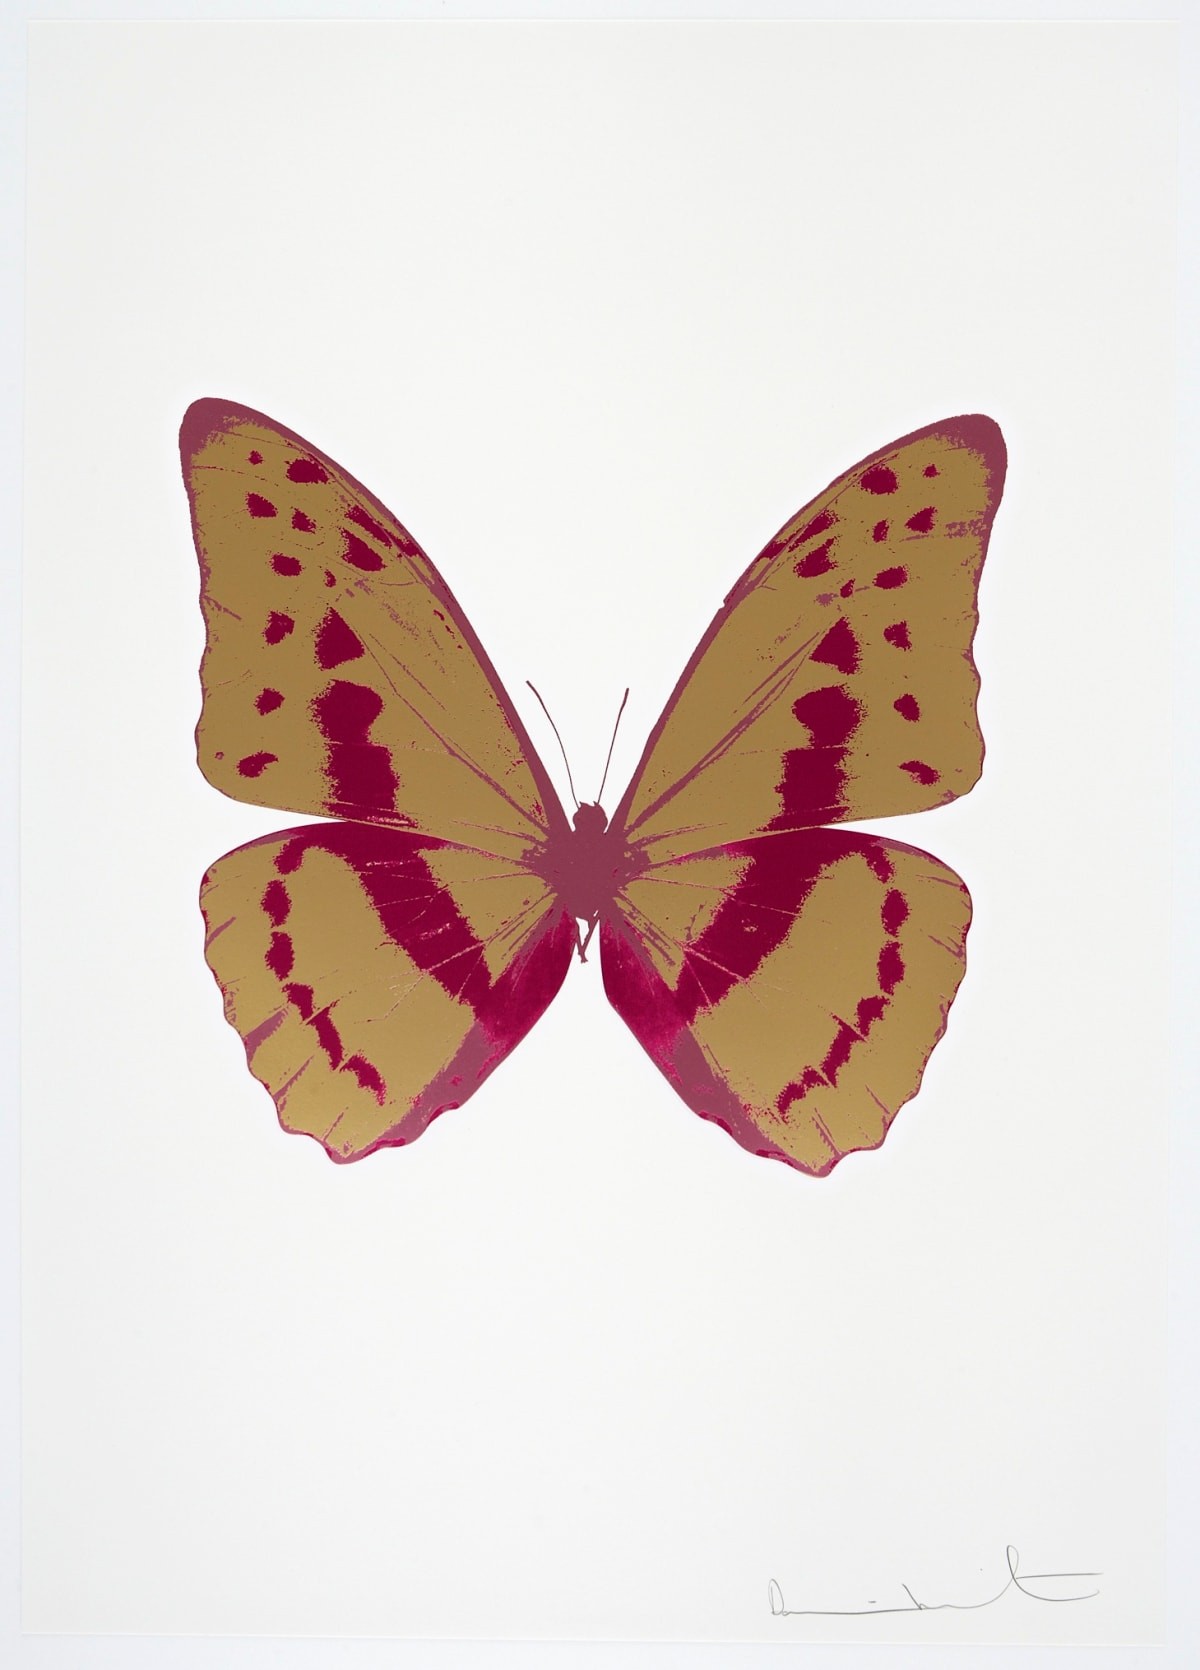 Damien Hirst The Souls III - Hazy Gold/Fuchsia Pink/Loganberry Pink, 2010 3 colour foil block on 300gsm Arches 88 archival paper. Signed and numbered. Published by Paul Stolper and Other Criteria 72 x 51cm OC7955 / 660-58 Edition of 15